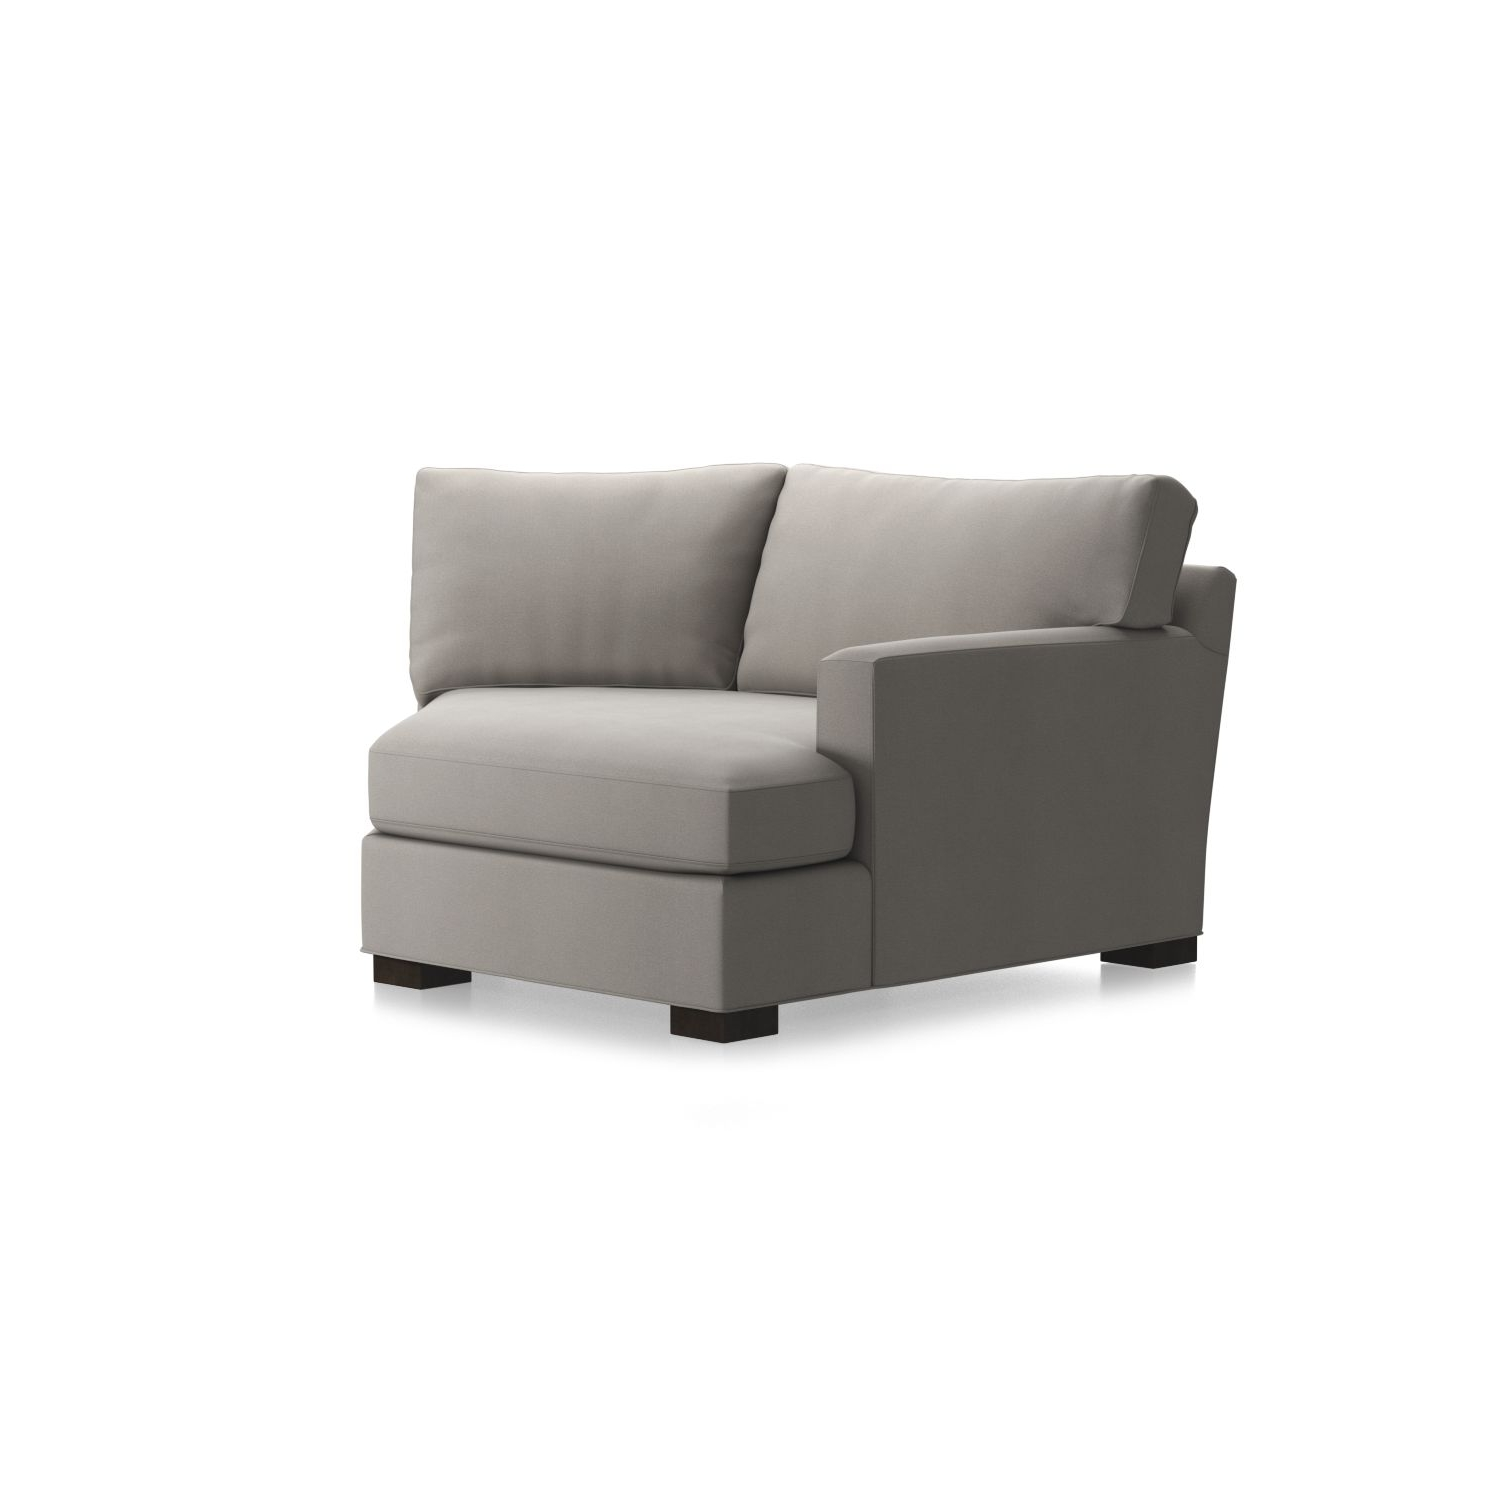 Favorite Angled Chaise Sofas Pertaining To Axis Ii Left Arm Angled Chaise Lounge In Chaises + Reviews (View 9 of 20)